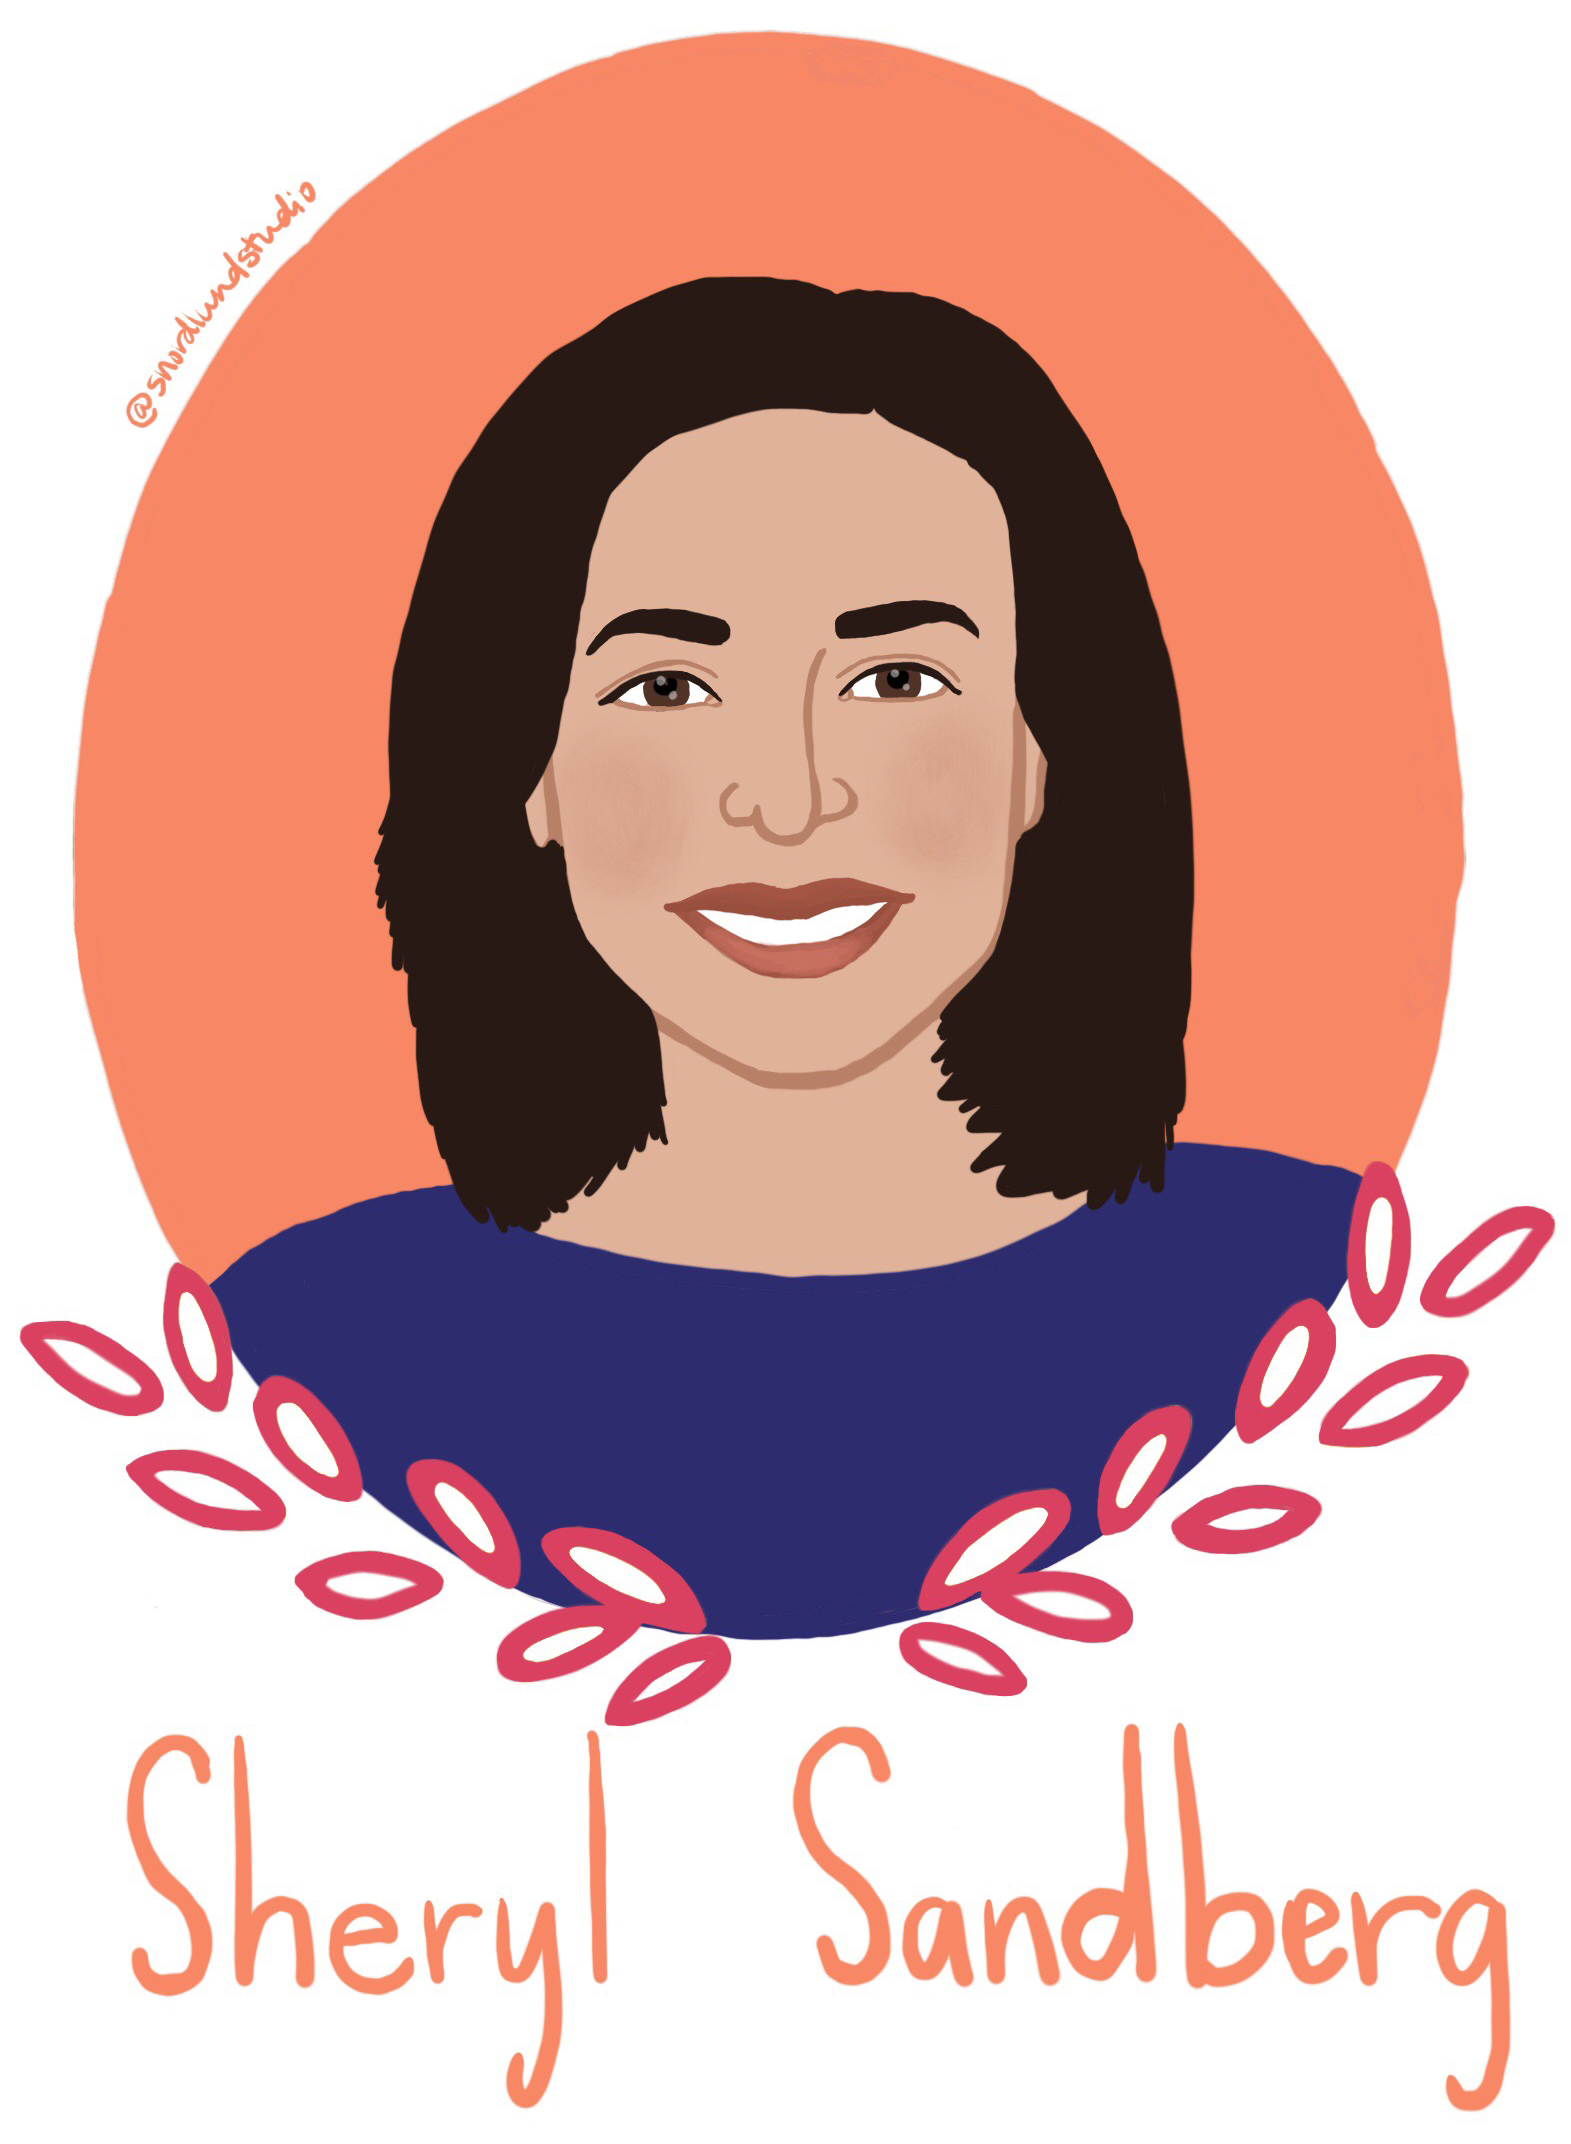 43. Sheryl Sandberg - Sheryl Sandberg is the chief operating officer of Facebook and the founder of Leanin.org. She is also an author, most notably for her book, Lean In.